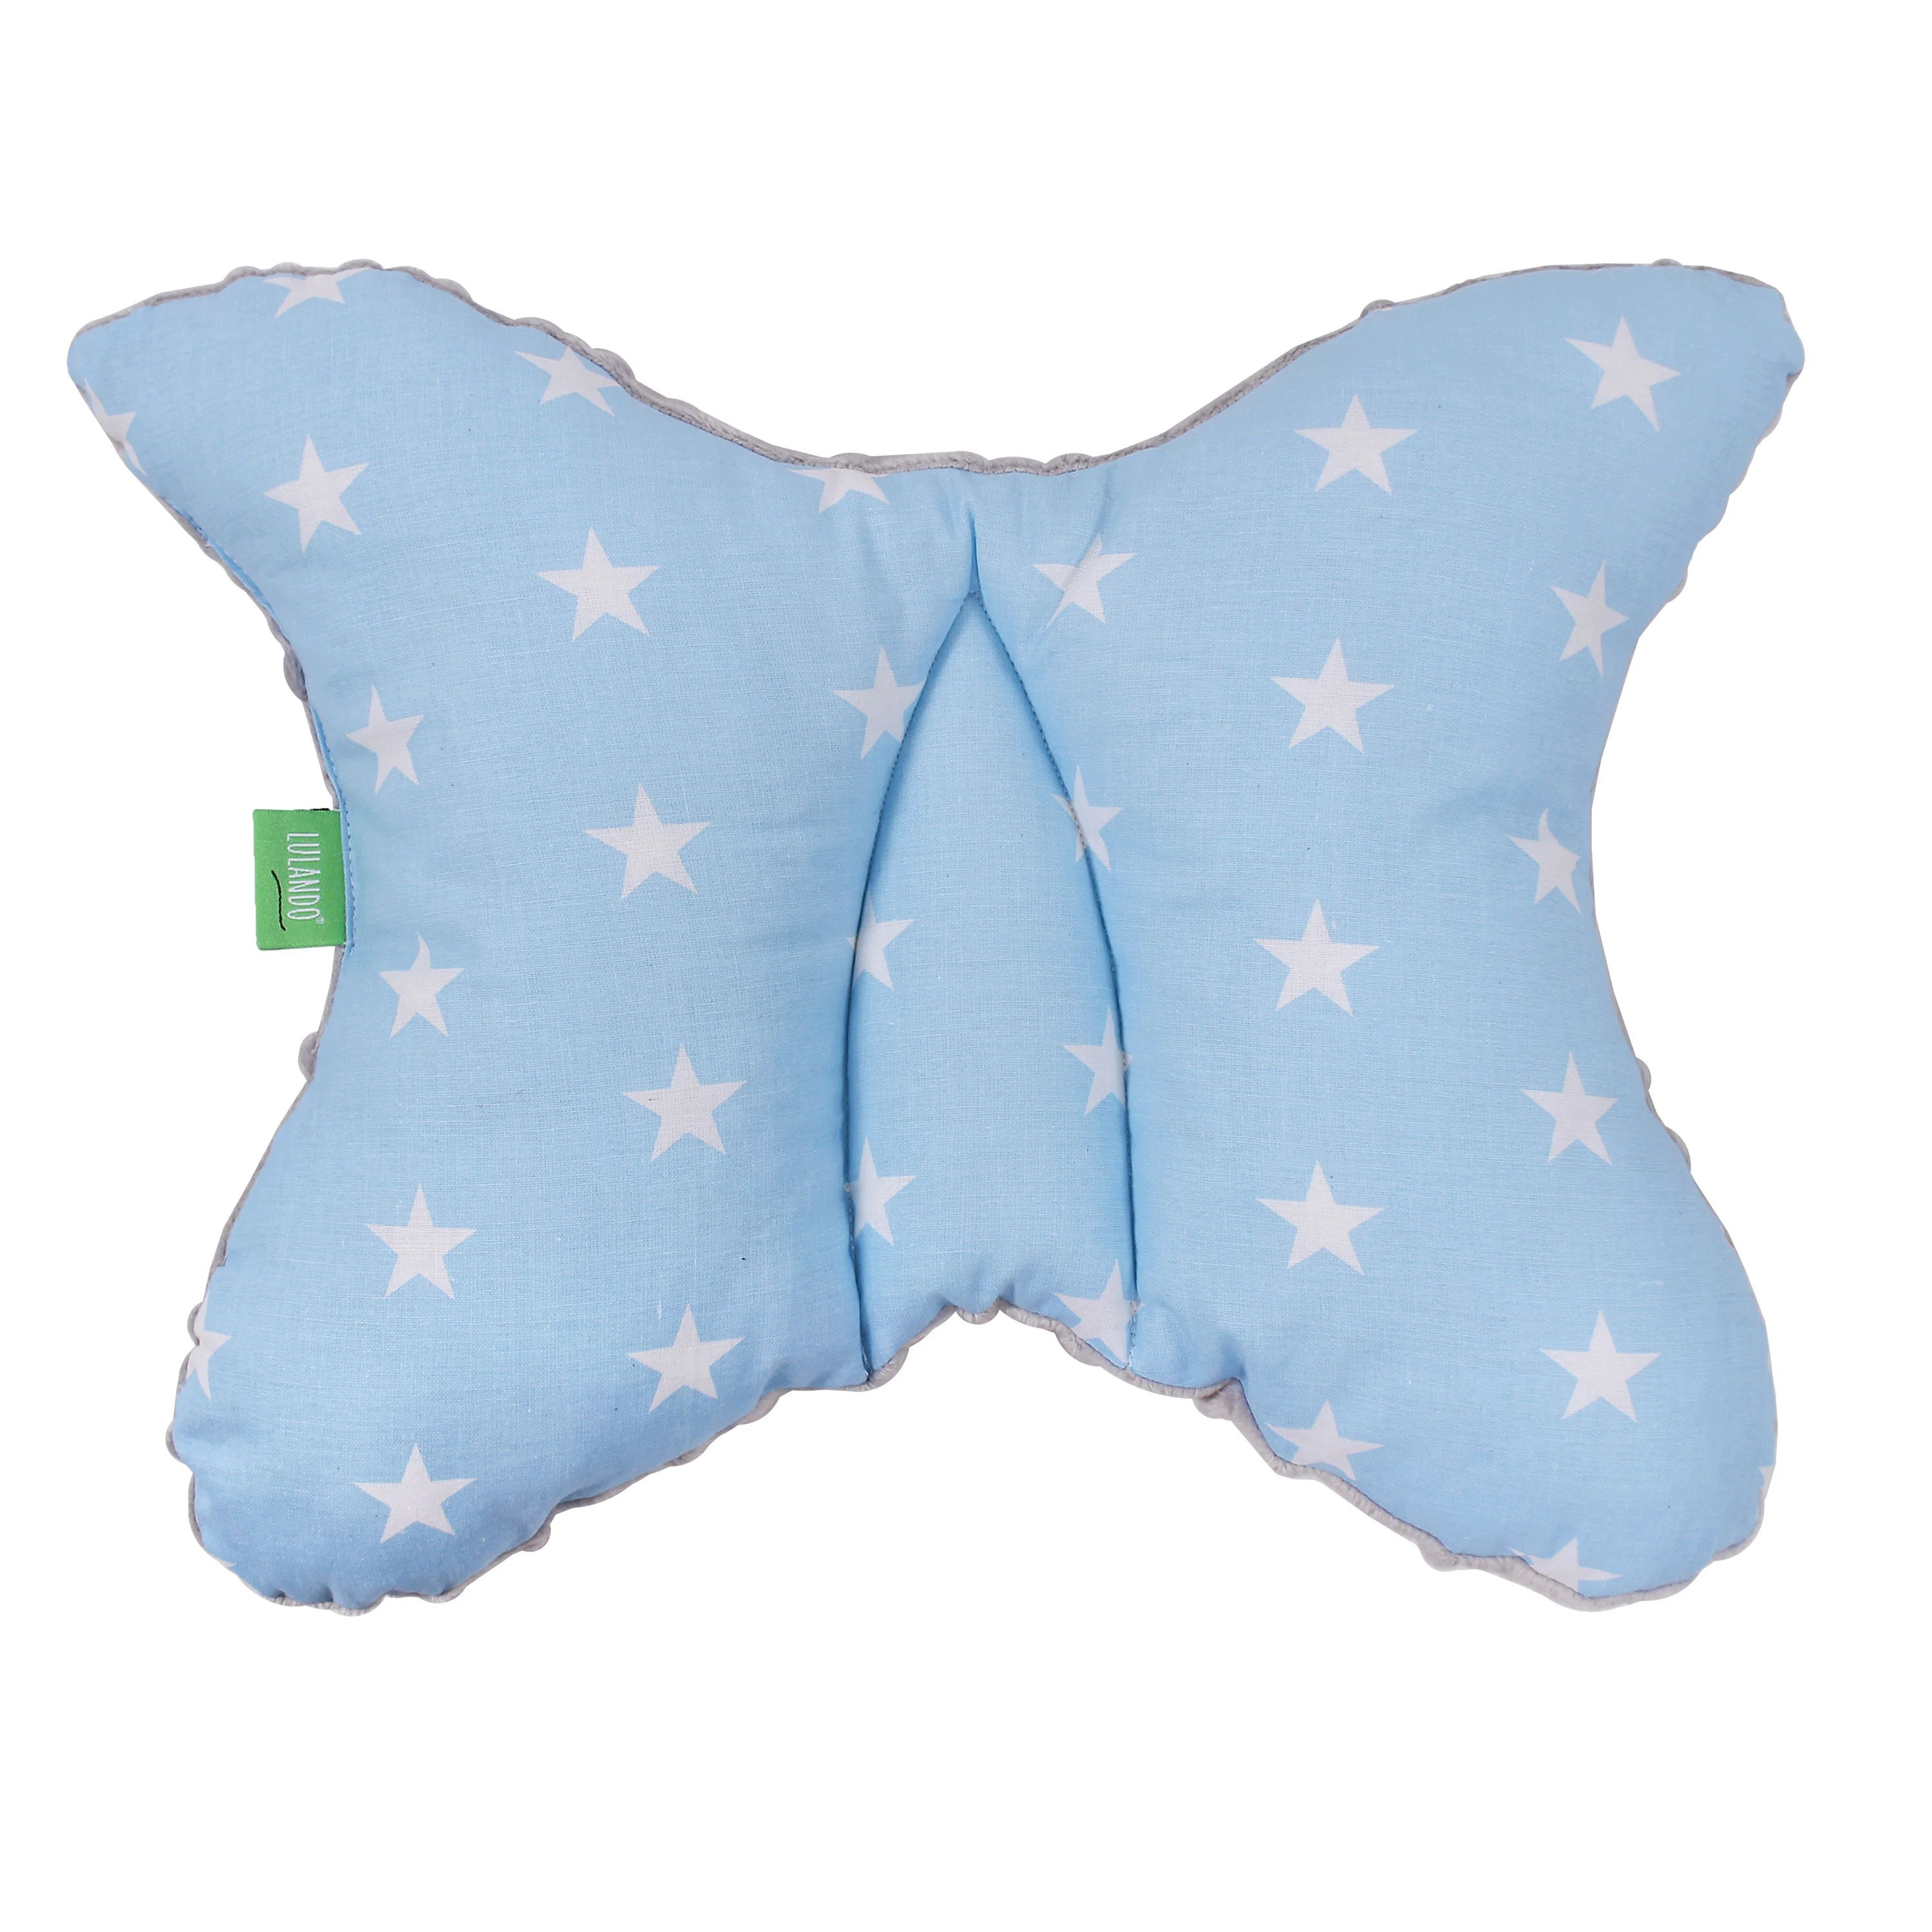 Baby Schlafkissen Lulando Super Soft Minky Pram Pillow Baby Pillow Head Support Pillow Pram Cushion Pillow For Newborns And Babies Grey White Stars Blue